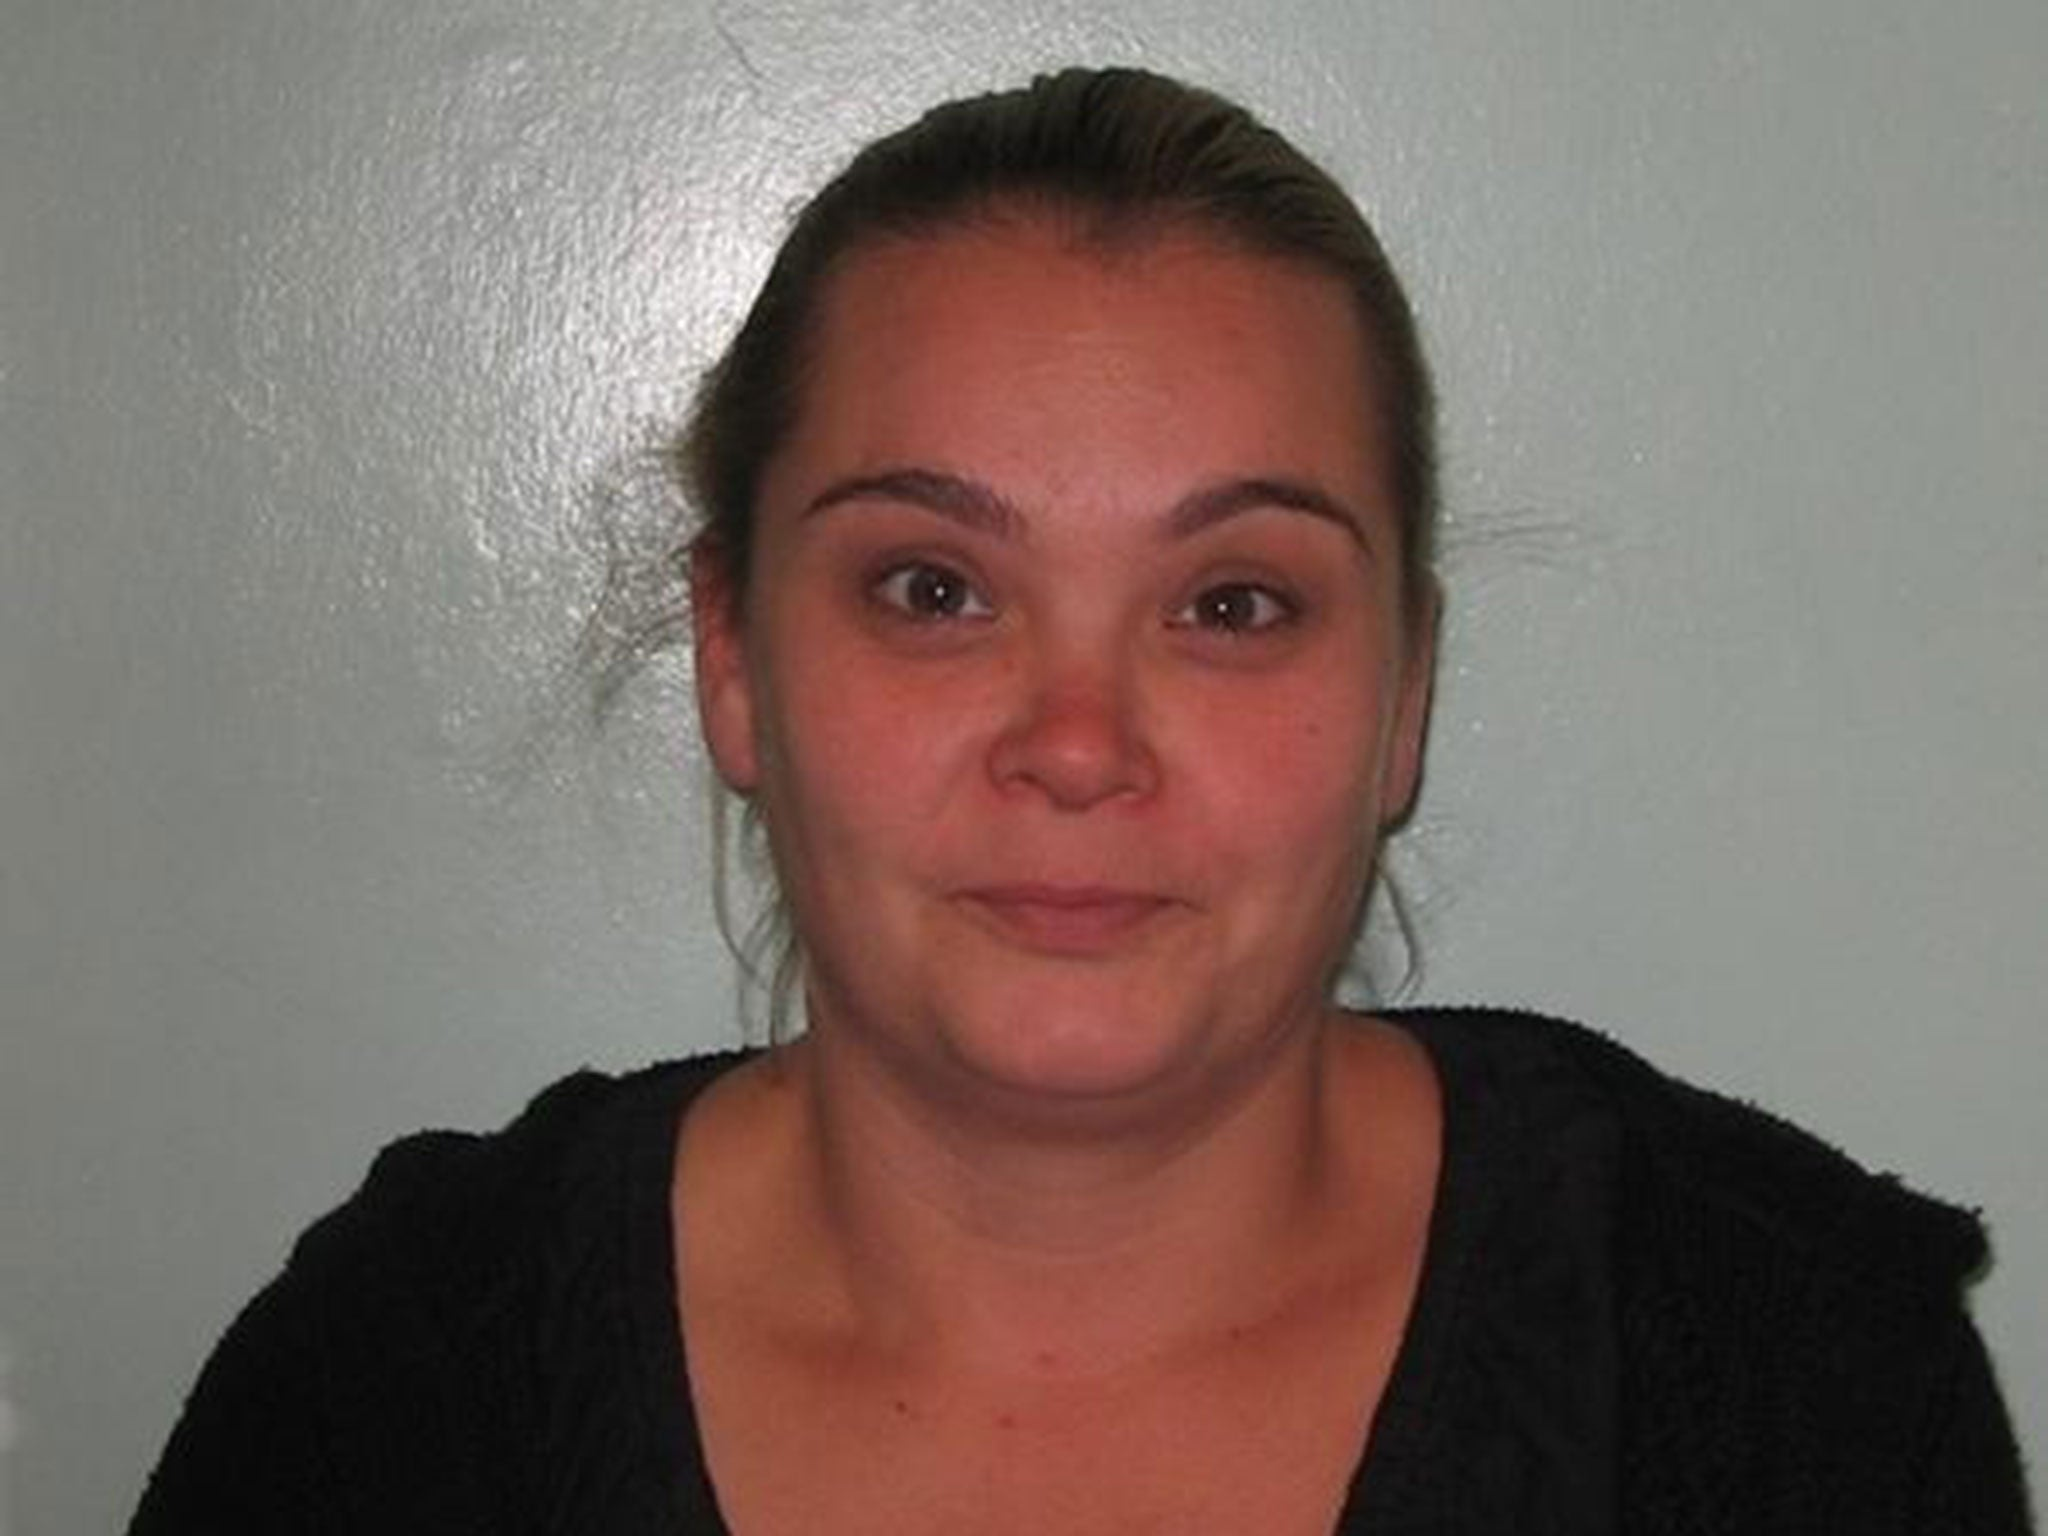 uk.icdn.ru girl First woman jailed for 'revenge porn' after posting sexually explicit photos of ex-girlfriend to Facebook | The Independent